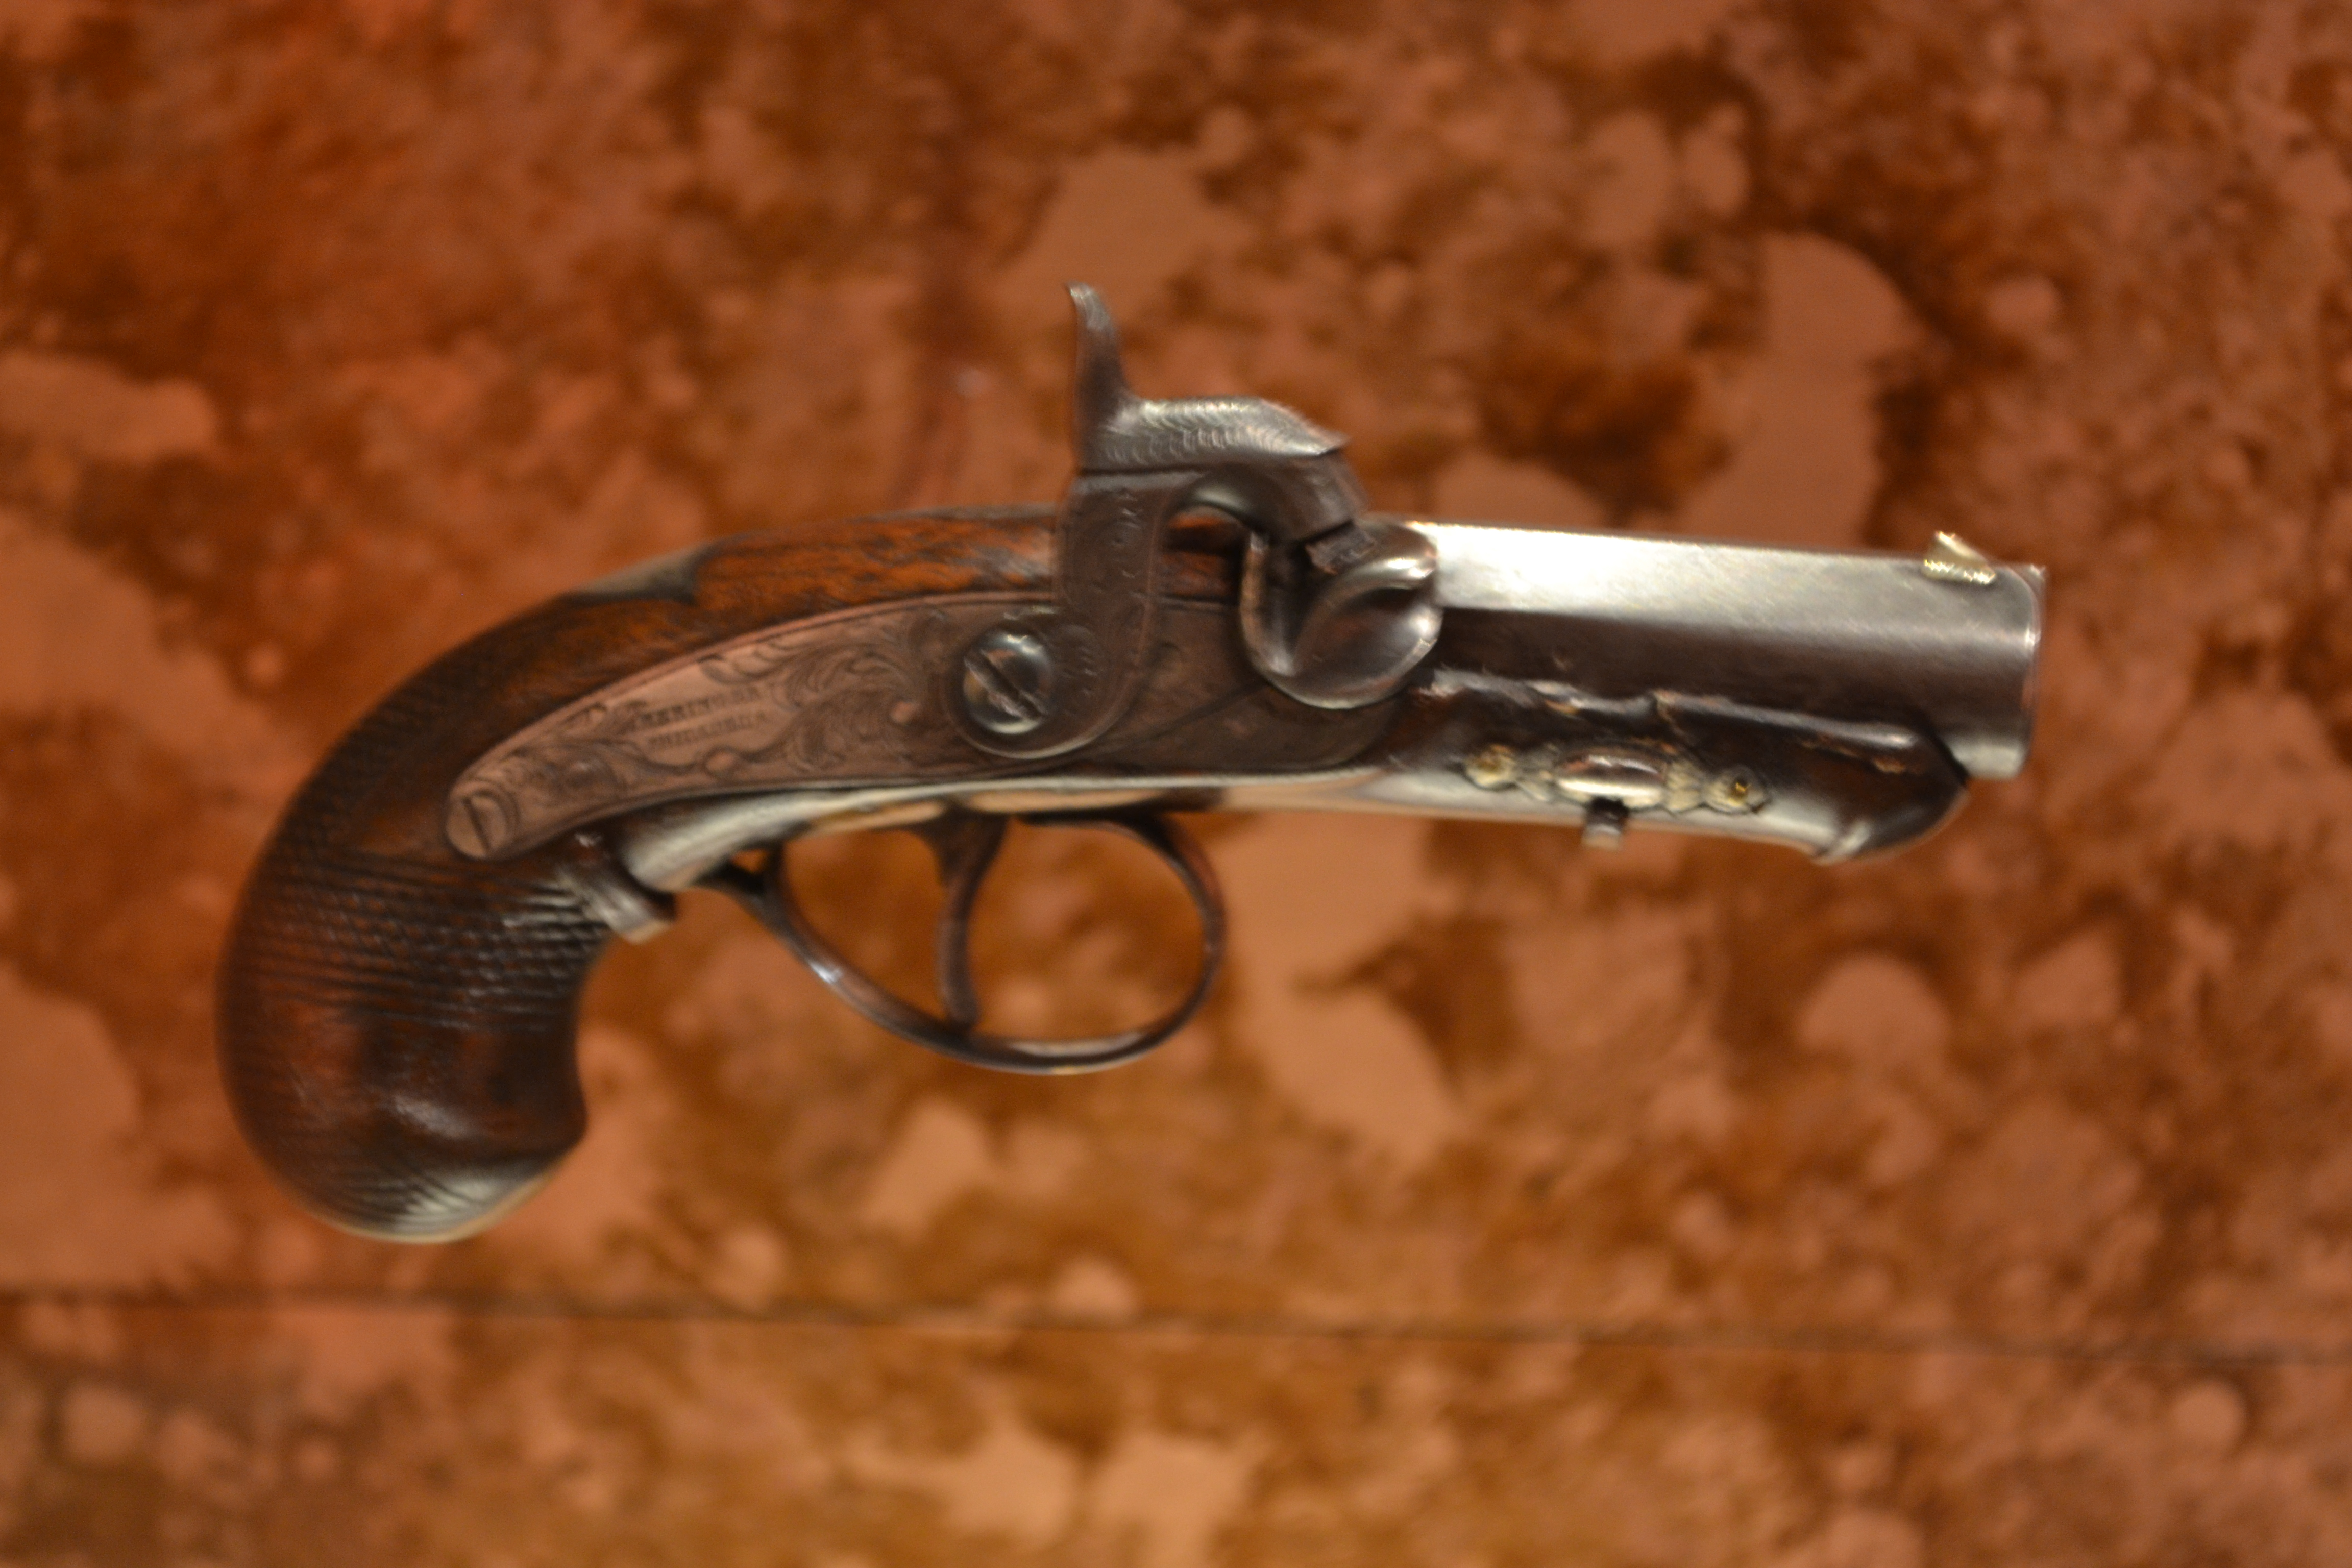 The gun used to assassinate Abraham Lincoln on display at Ford's Theatre in Washington, D.C. Photo taken on January 10, 2013.